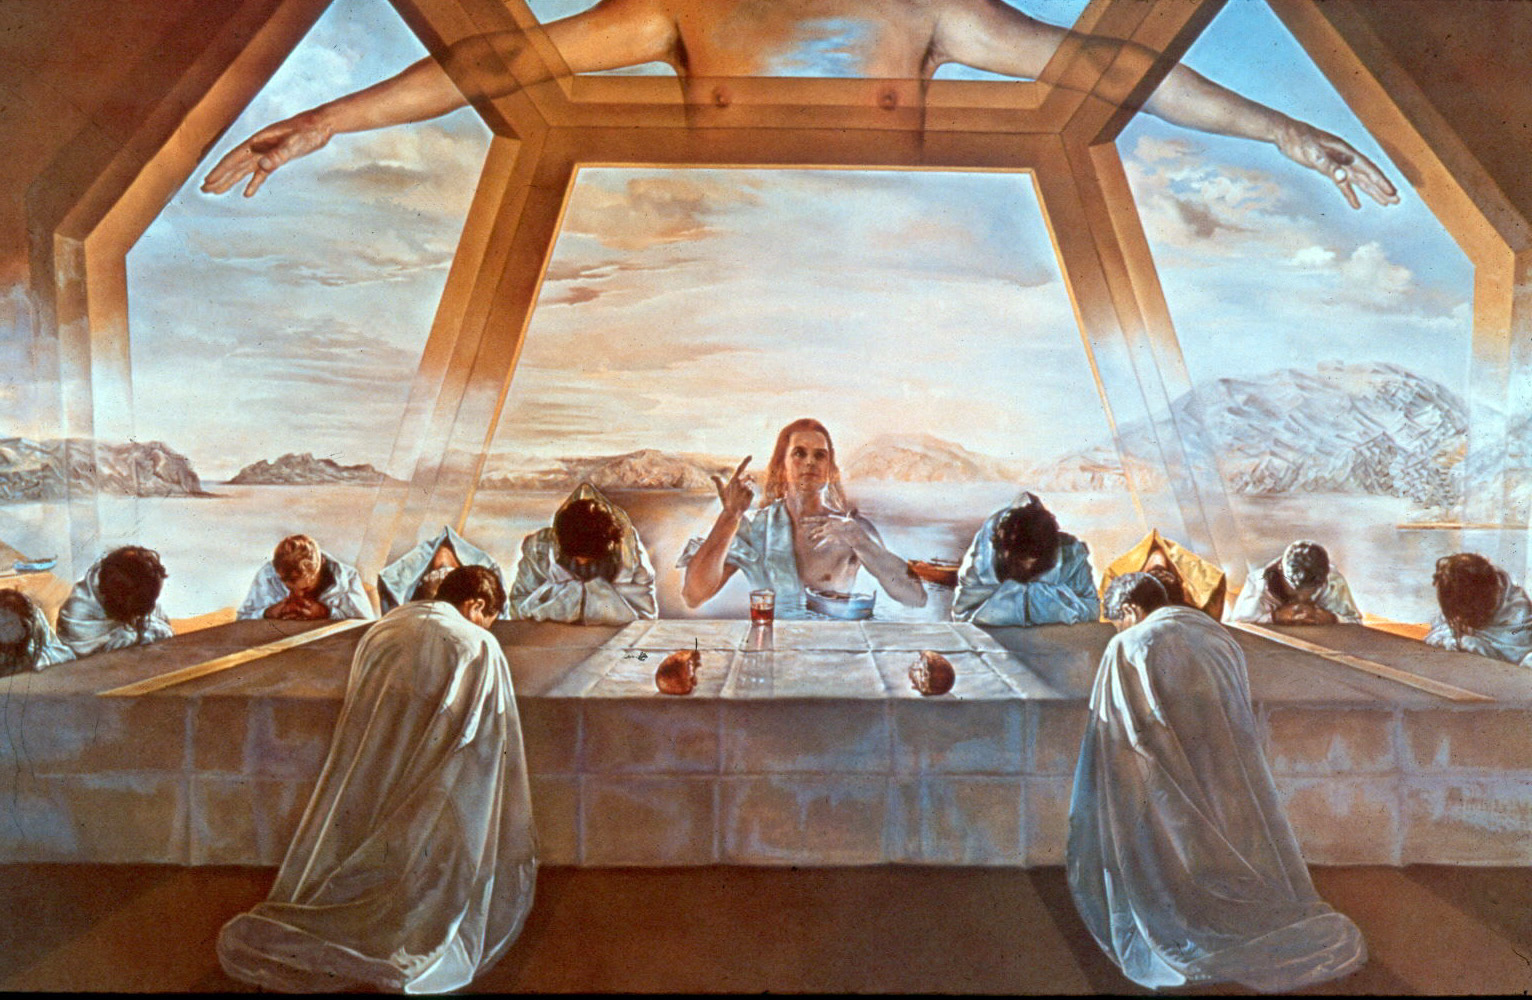 https://en.m.wikipedia.org/wiki/File:Dali_-_The_Sacrament_of_the_Last_Supper_-_lowres.jpg